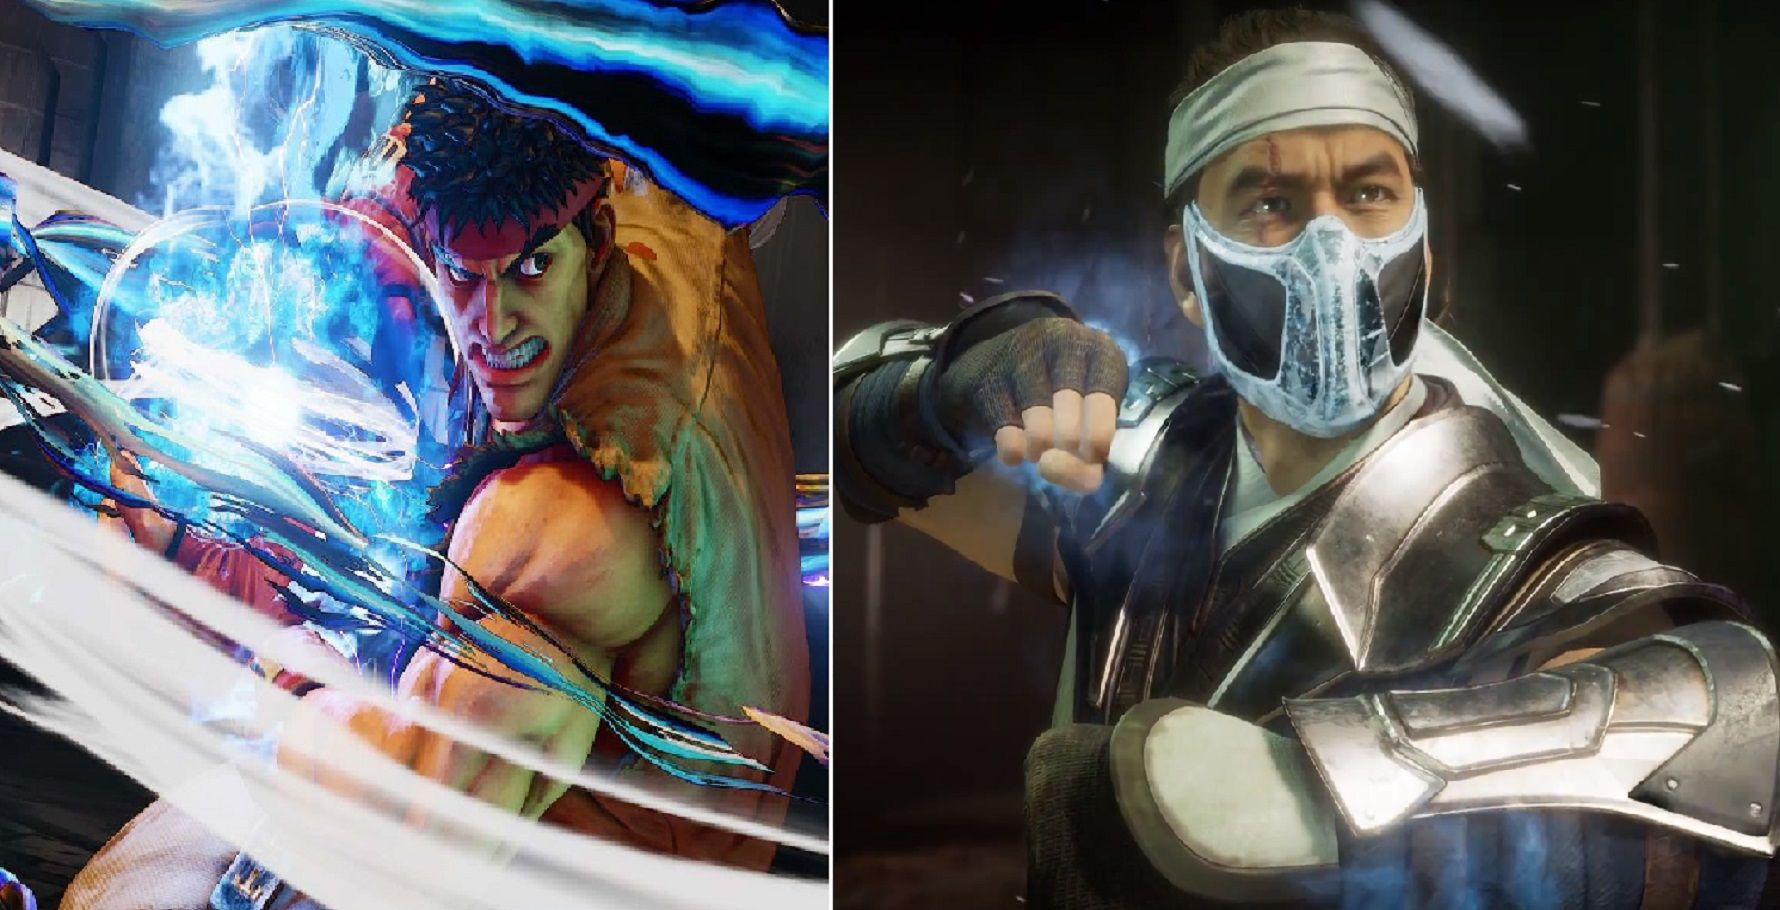 10 Street Fighter Vs Mortal Kombat Fights We D Love To See